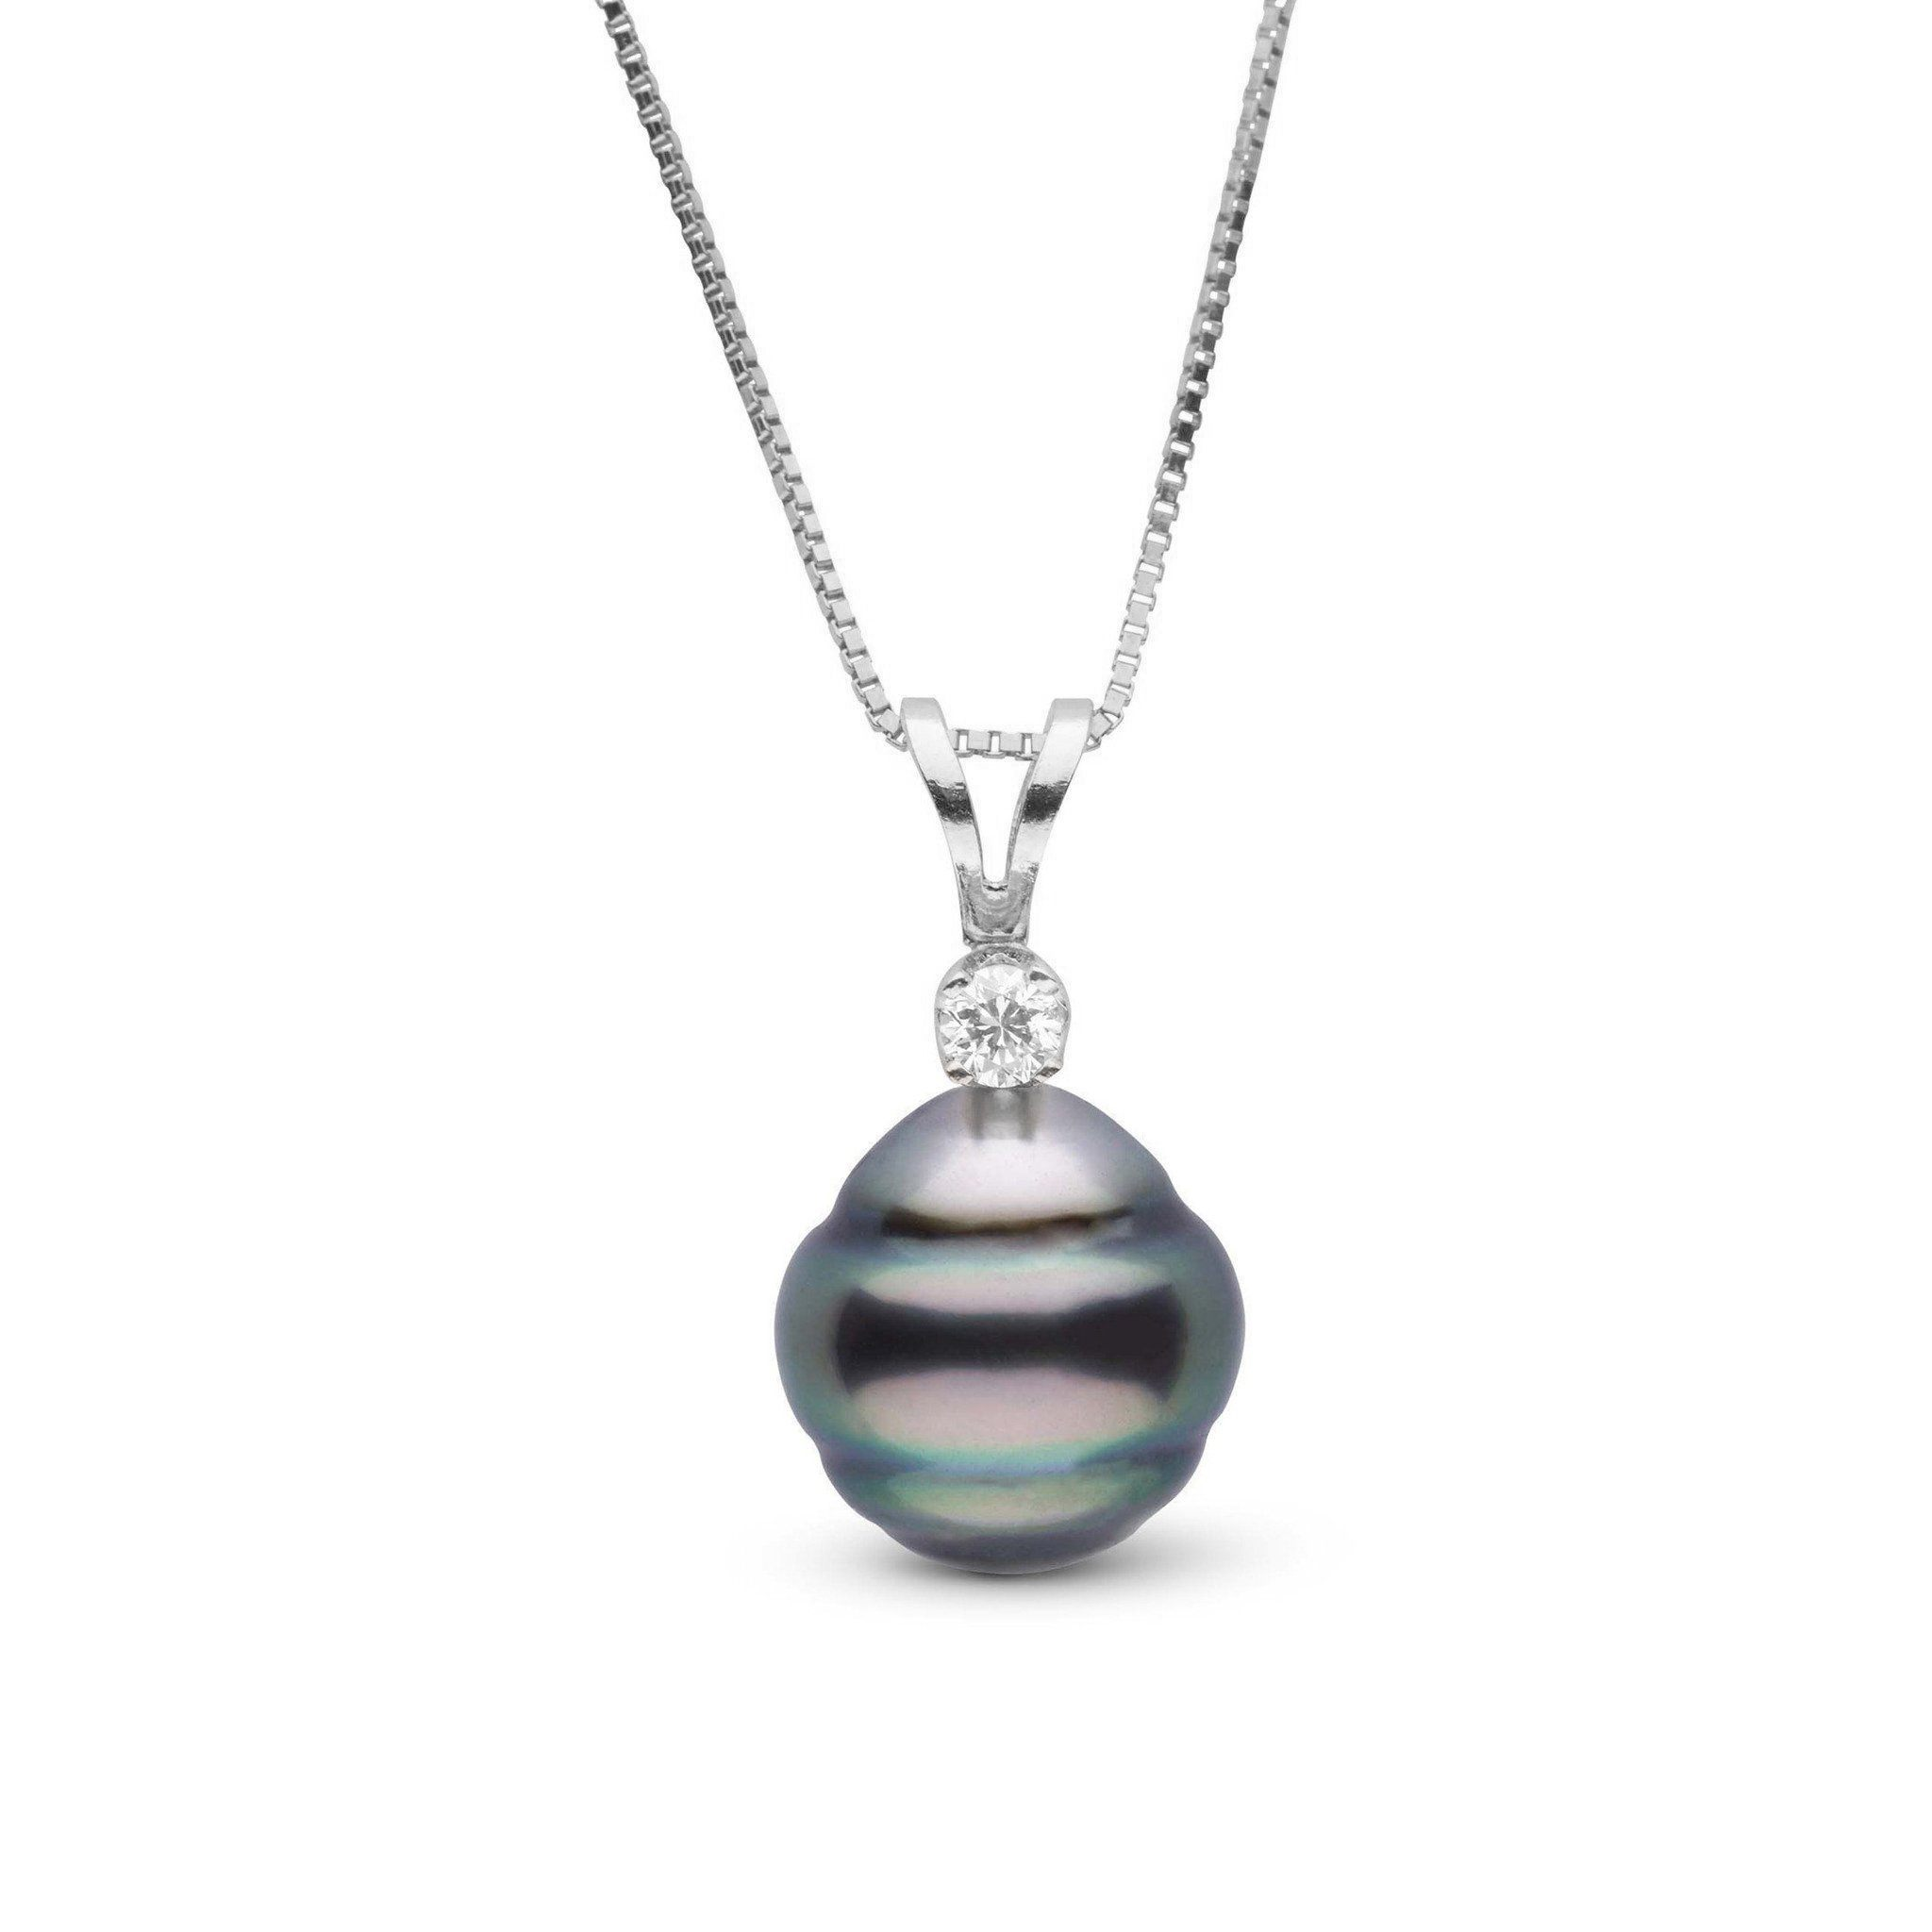 Harmony Collection 8.0-9.0 mm Baroque Tahitian Pearl & Diamond Pendant